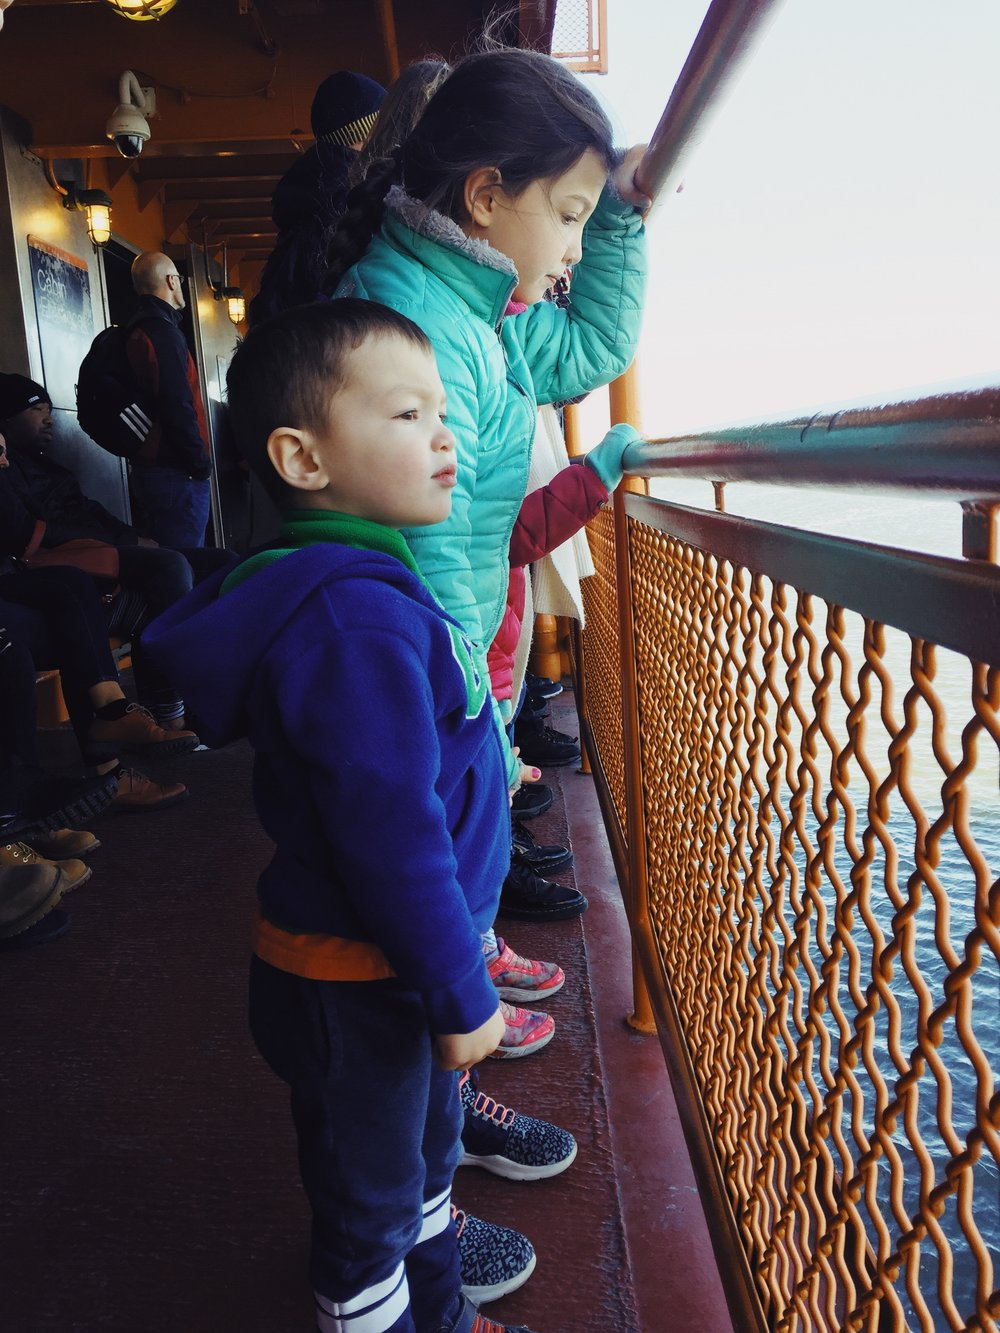 They have everything our immigrant ancestors would have hoped for an nothing they could have imagined. Here are our kiddos on the Staten Island Ferry looking at the Statue of Liberty while contemplating the American dream and the pursuit of Shopkin Gummies.